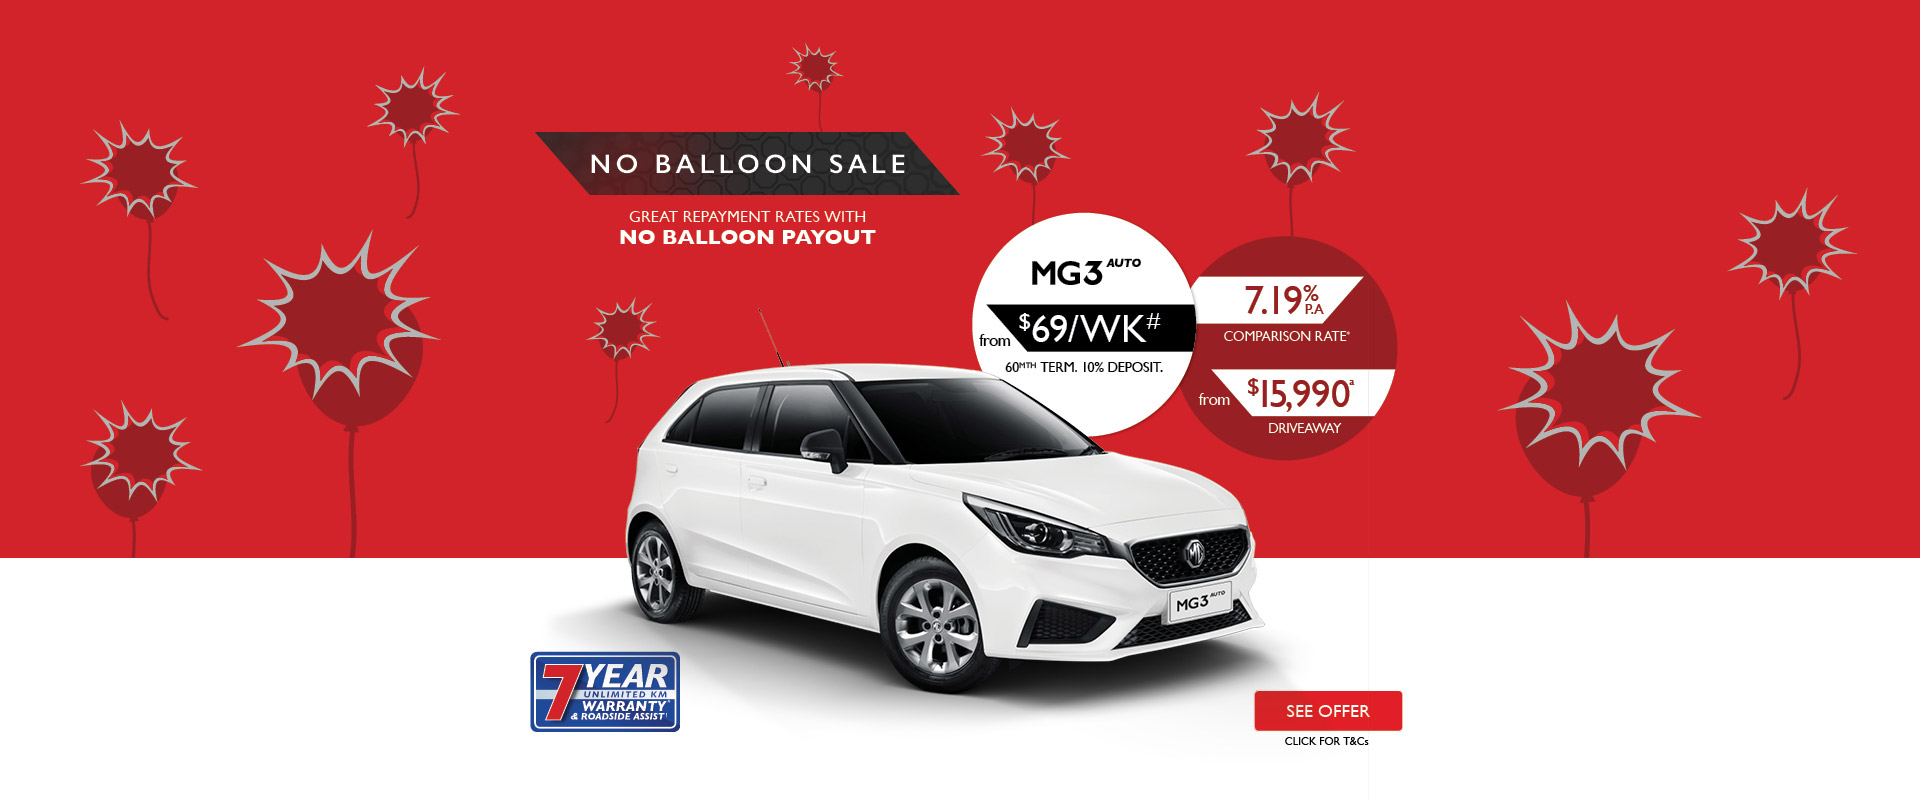 MG - No Balloon Sale - MG3